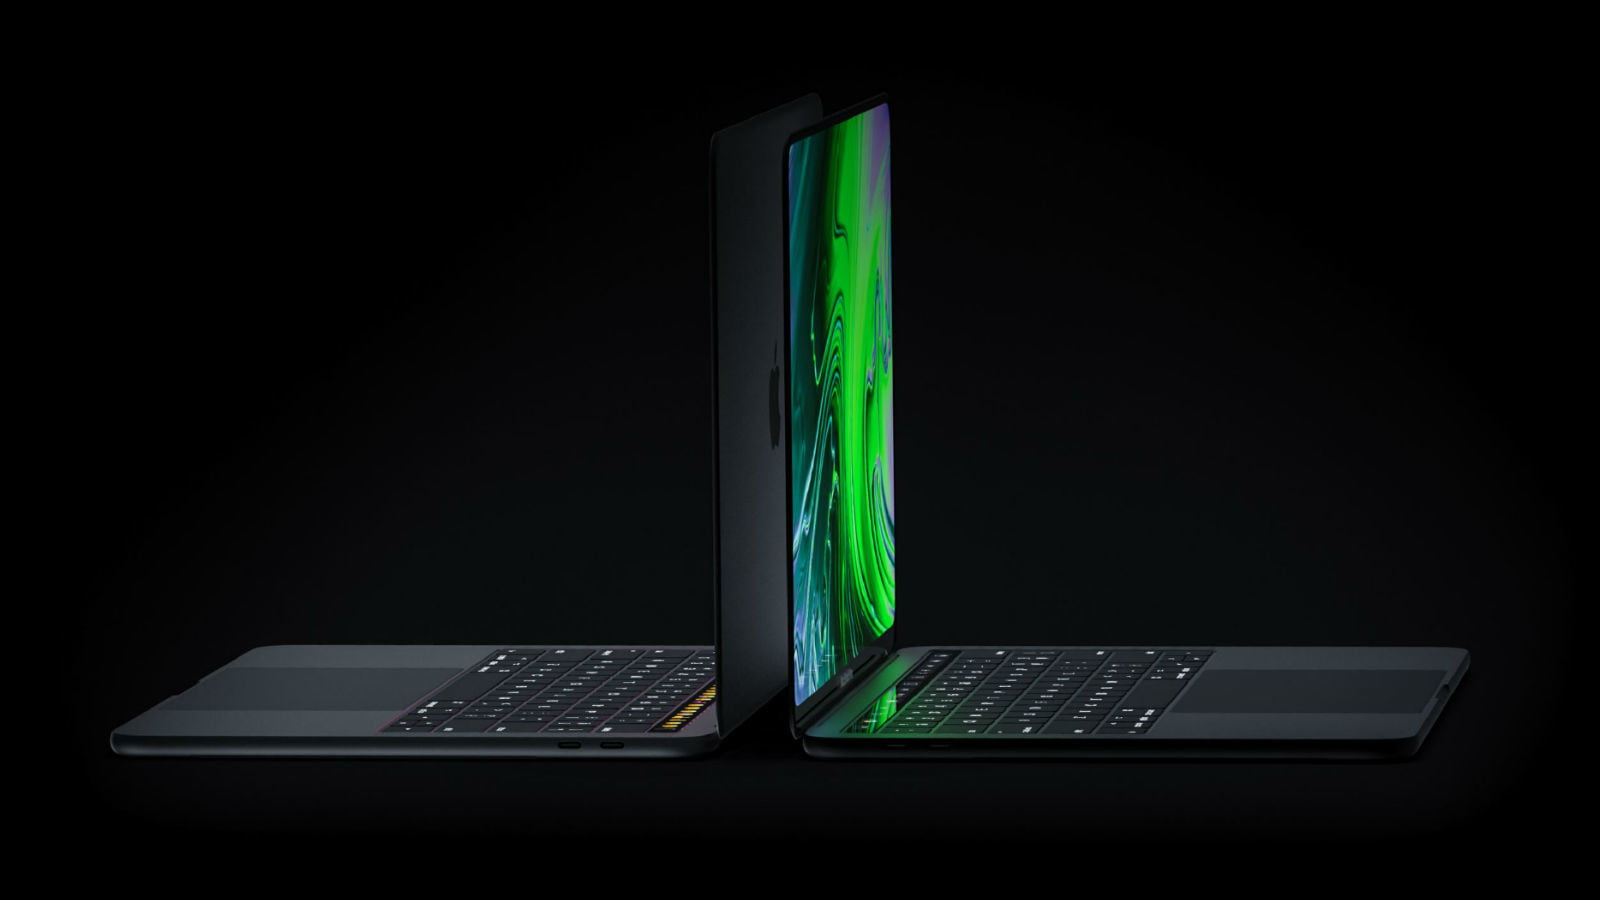 MacBook Pro 2019: Everything we know so far about Apple's